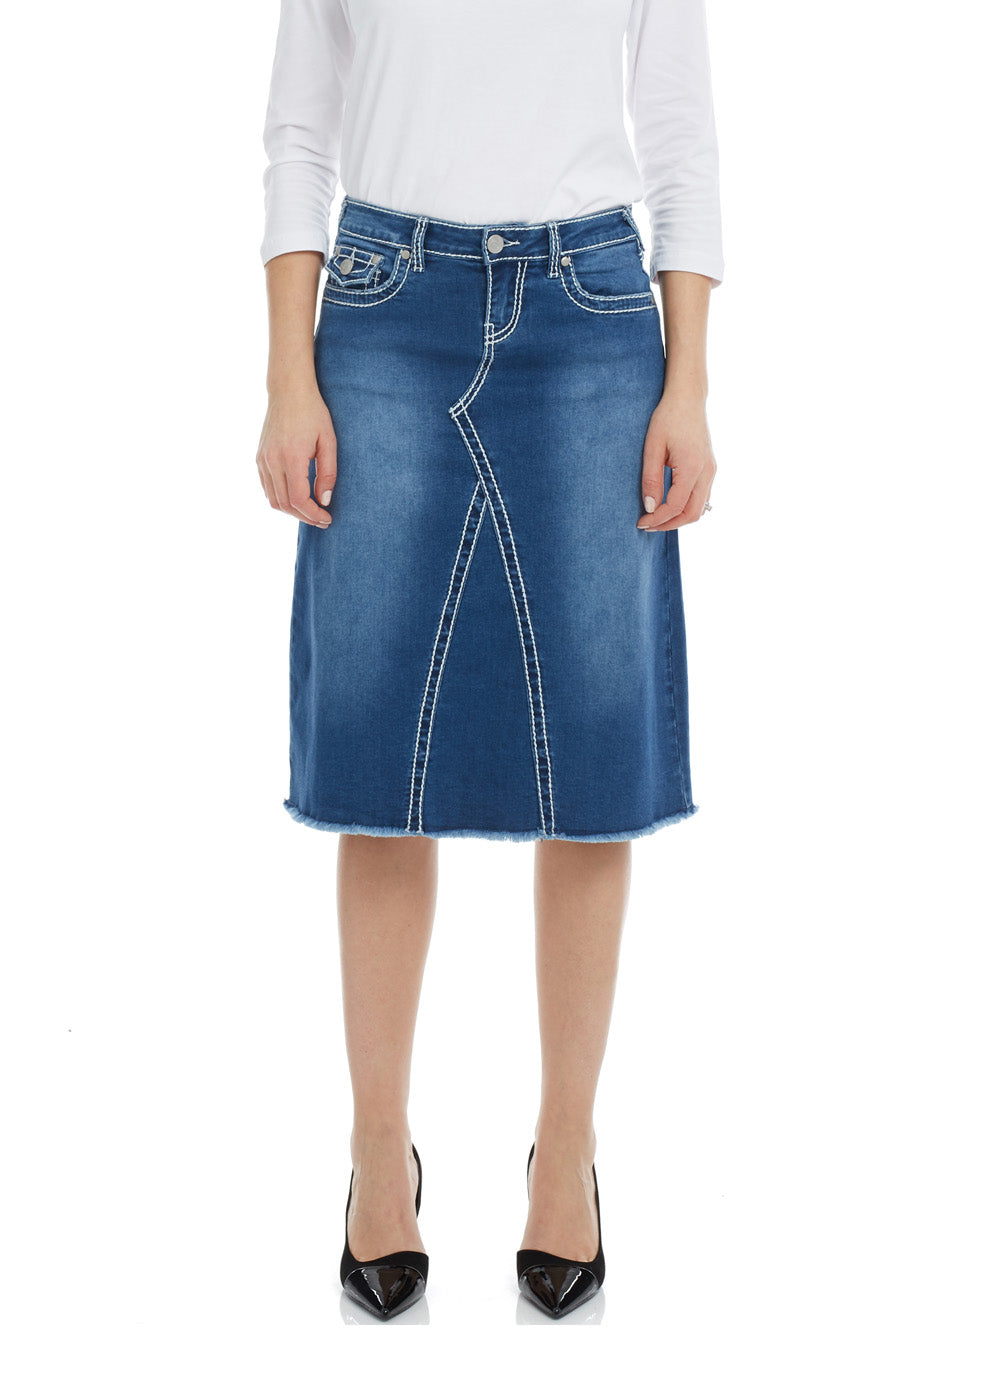 Esteez VICTORIA Skirt - Modest Below the Knee A-line Jean Skirt for Women - CLASSIC BLUE